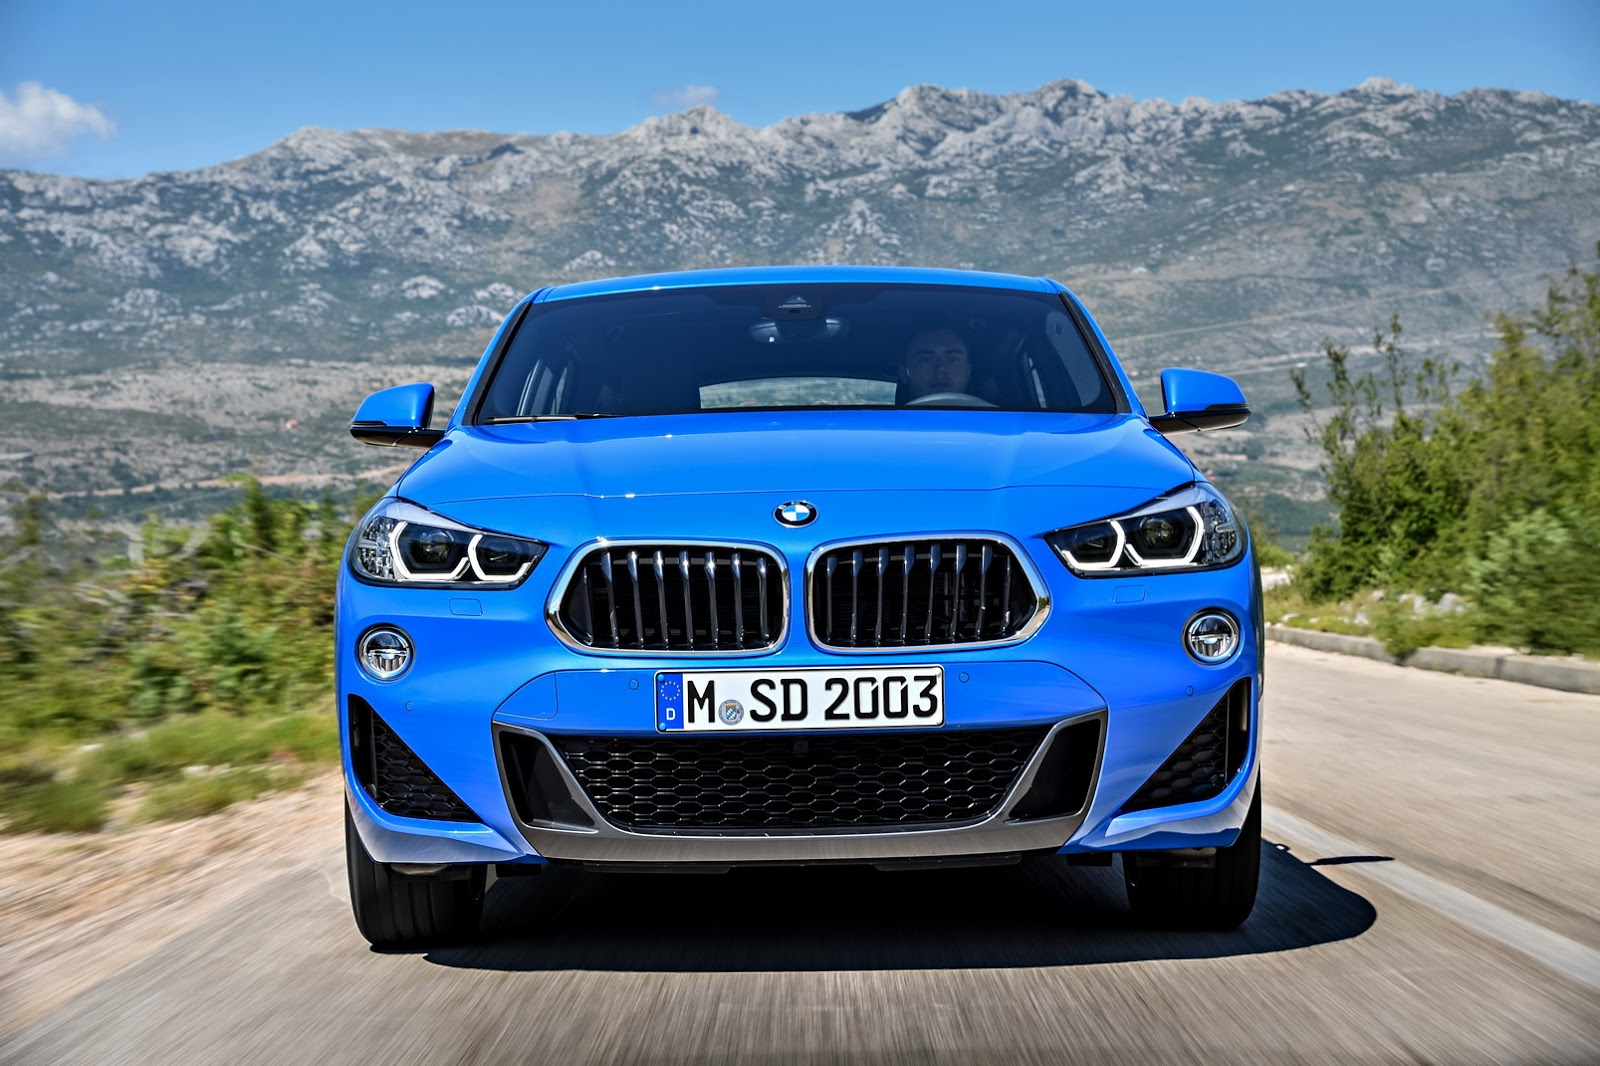 Bmw X2 Business Design >> 2018 BMW X2 (F39) Goes Official, Boasts Head-Turning Exterior Design - autoevolution